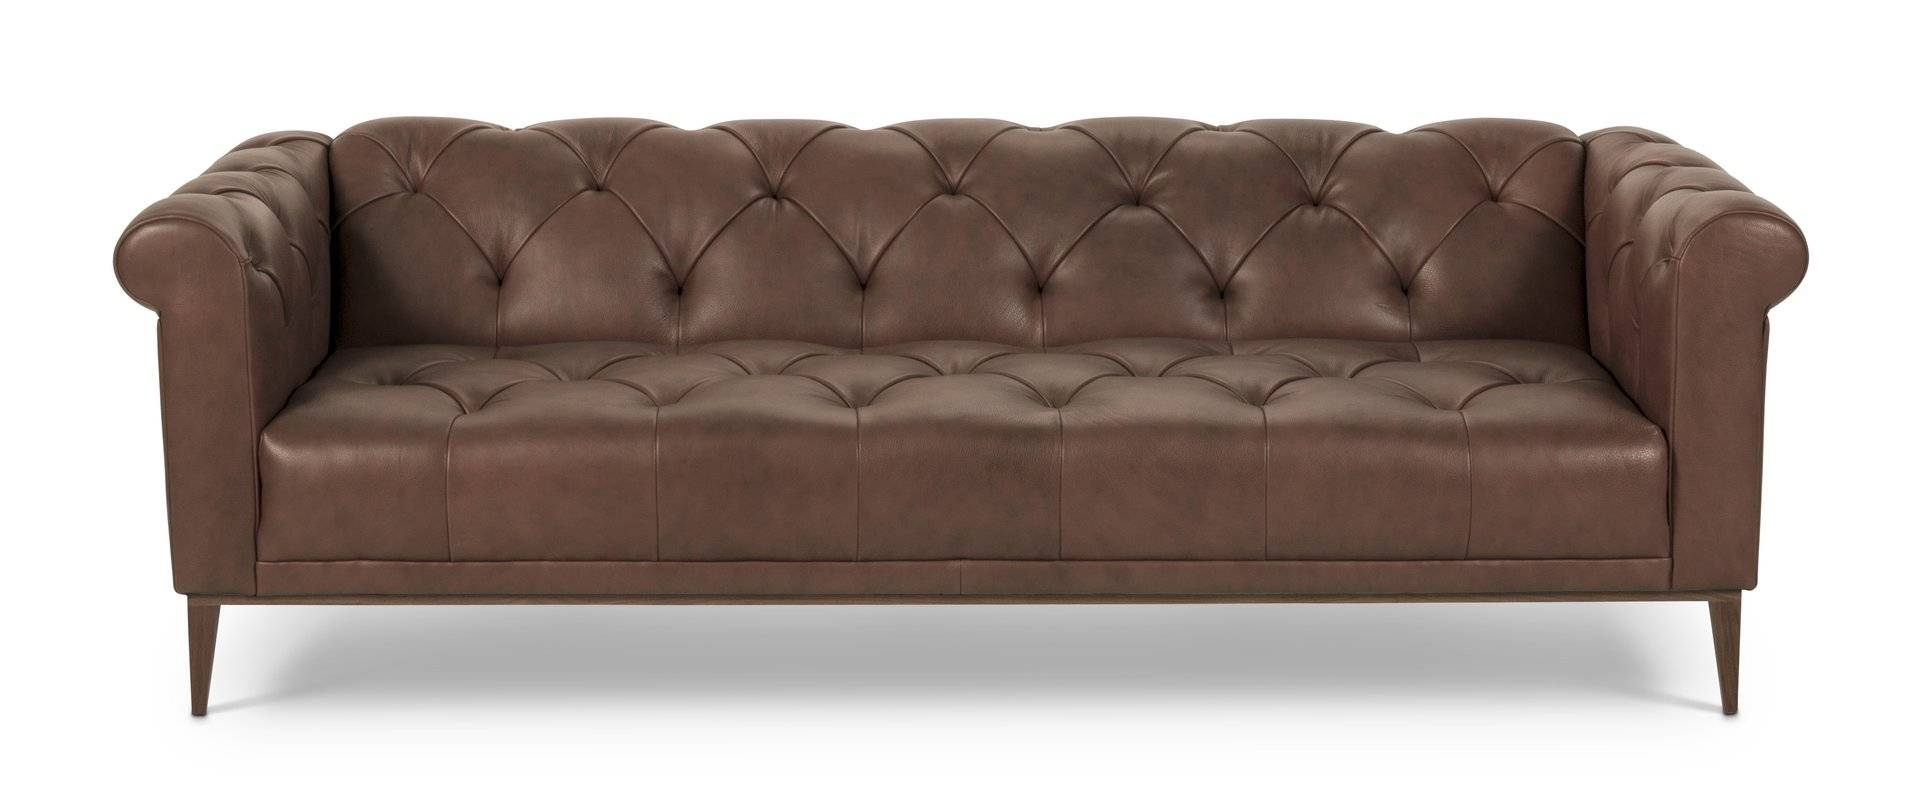 Passport Home Marx Leather Chesterfield Sofa | Wayfair within Leather Chesterfield Sofas (Image 19 of 30)